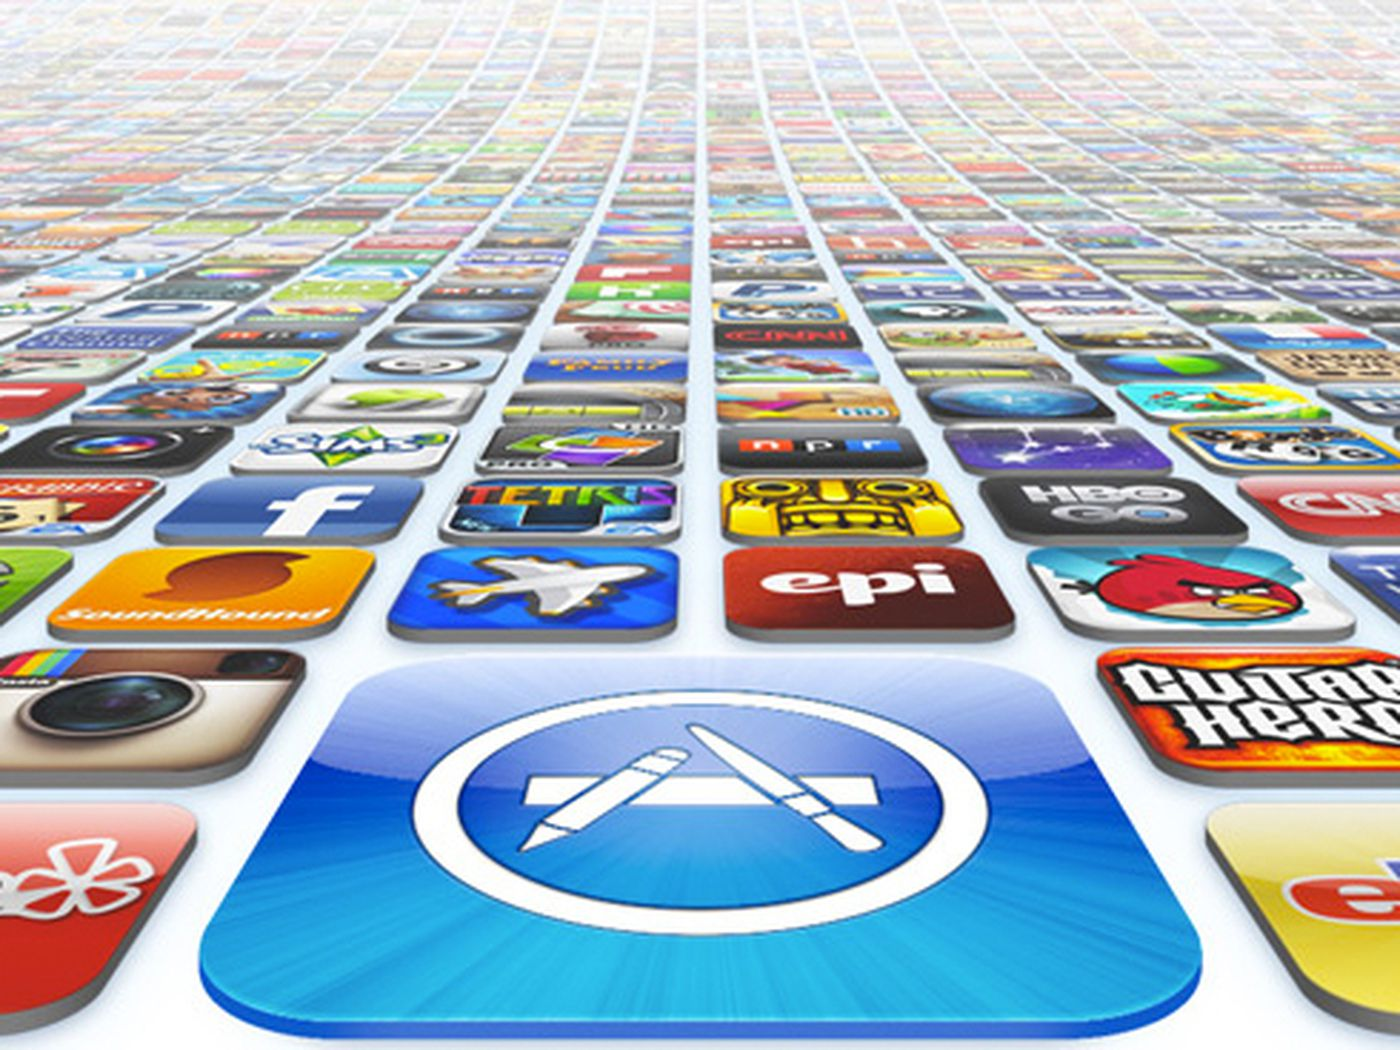 What were the first apps you ever downloaded from the App Store ...